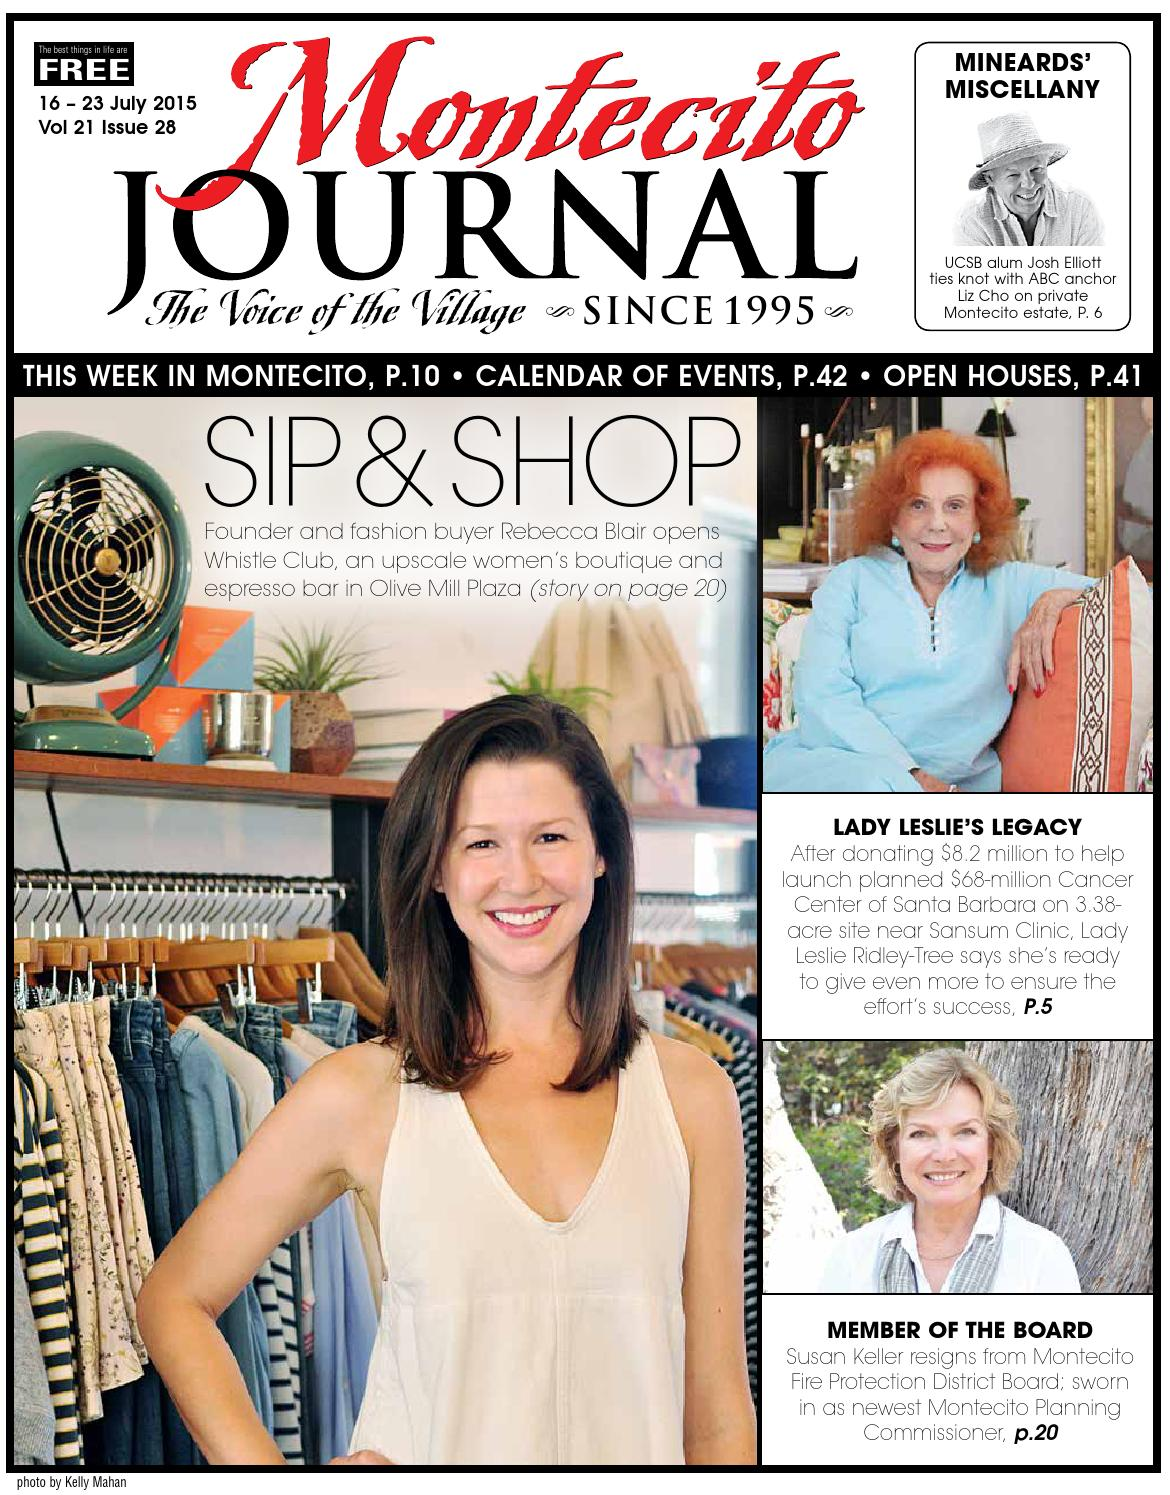 Sip Shop By Montecito Journal